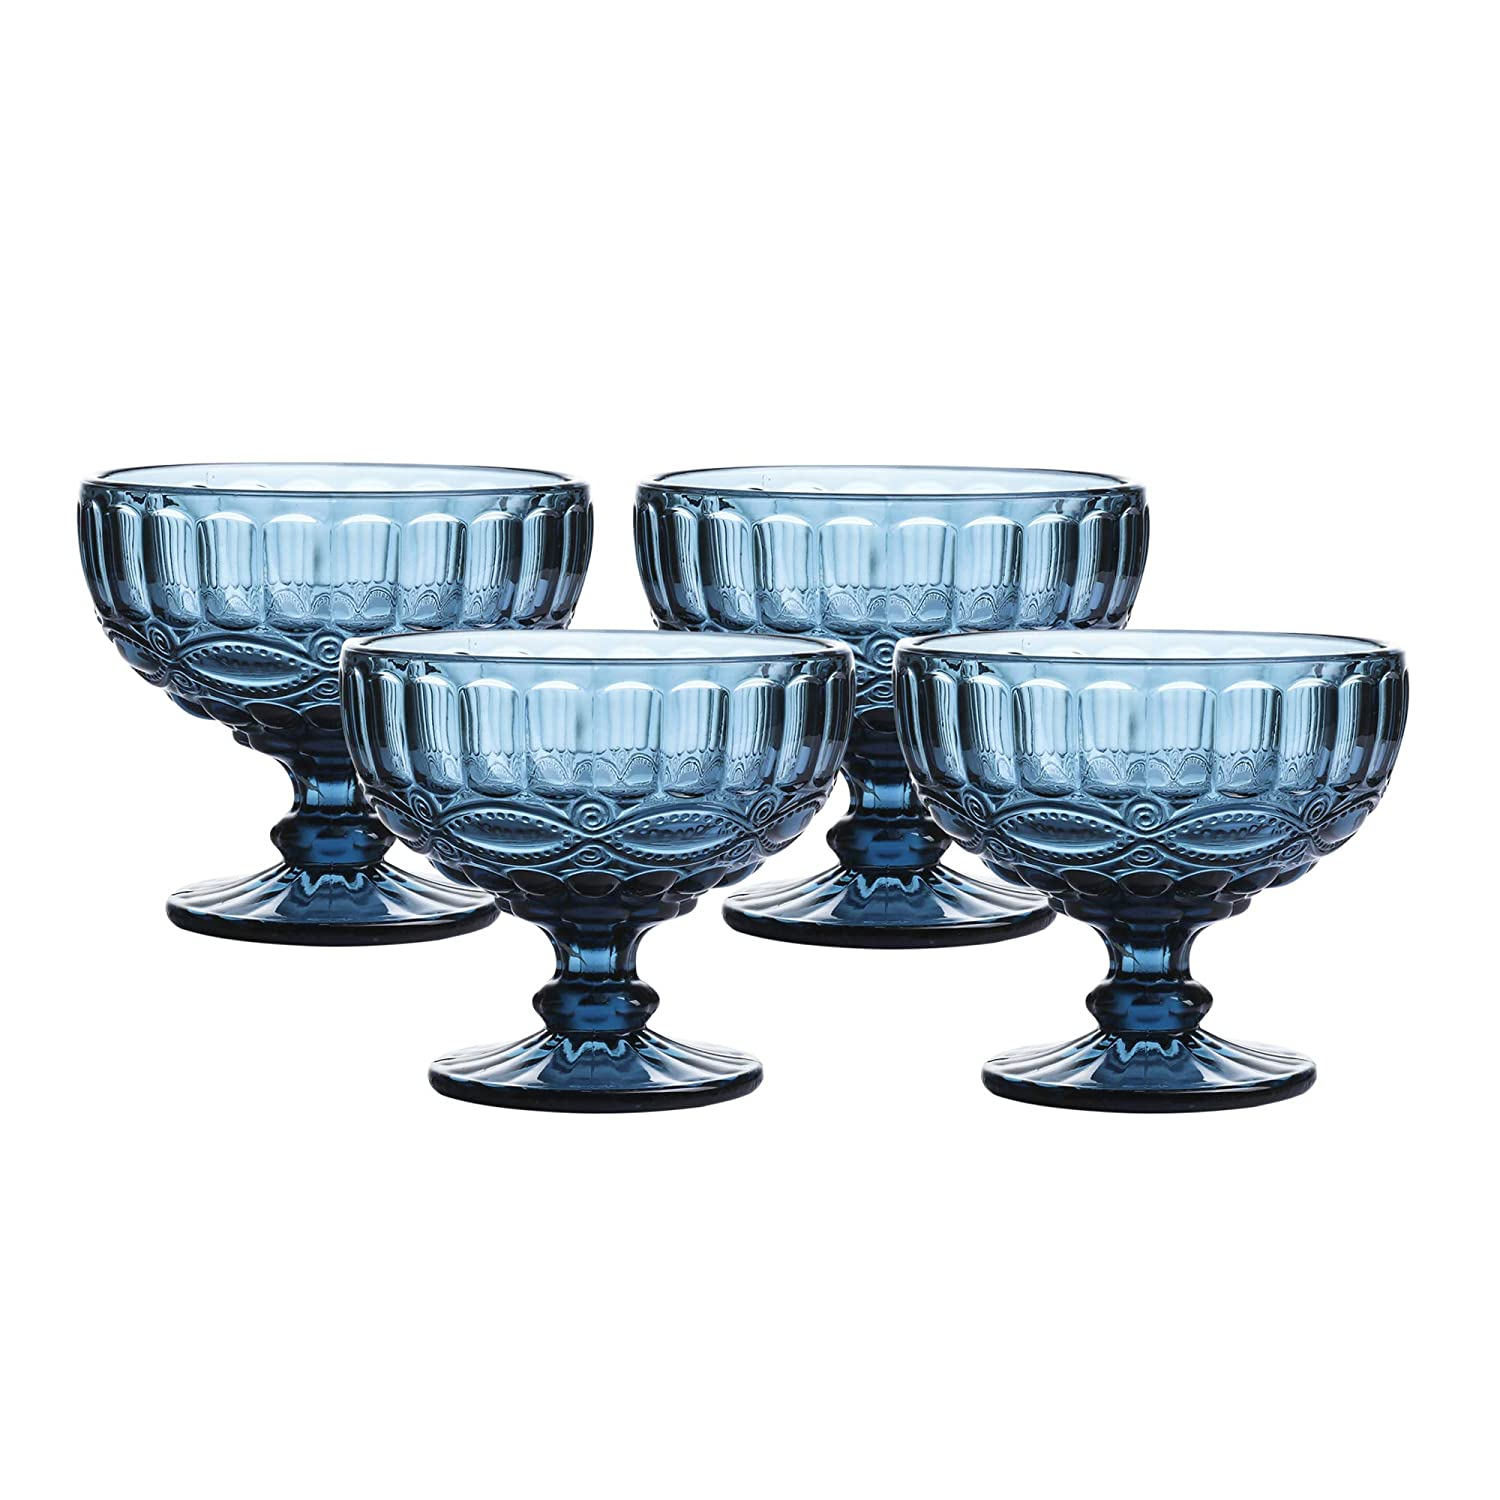 12 Ounce Glass Ice Cream Cups- Glass Dessert Bowls - Set of 4 Trifle/Fruit/Salad cocktail glass,Solid Glass Color (Blue)